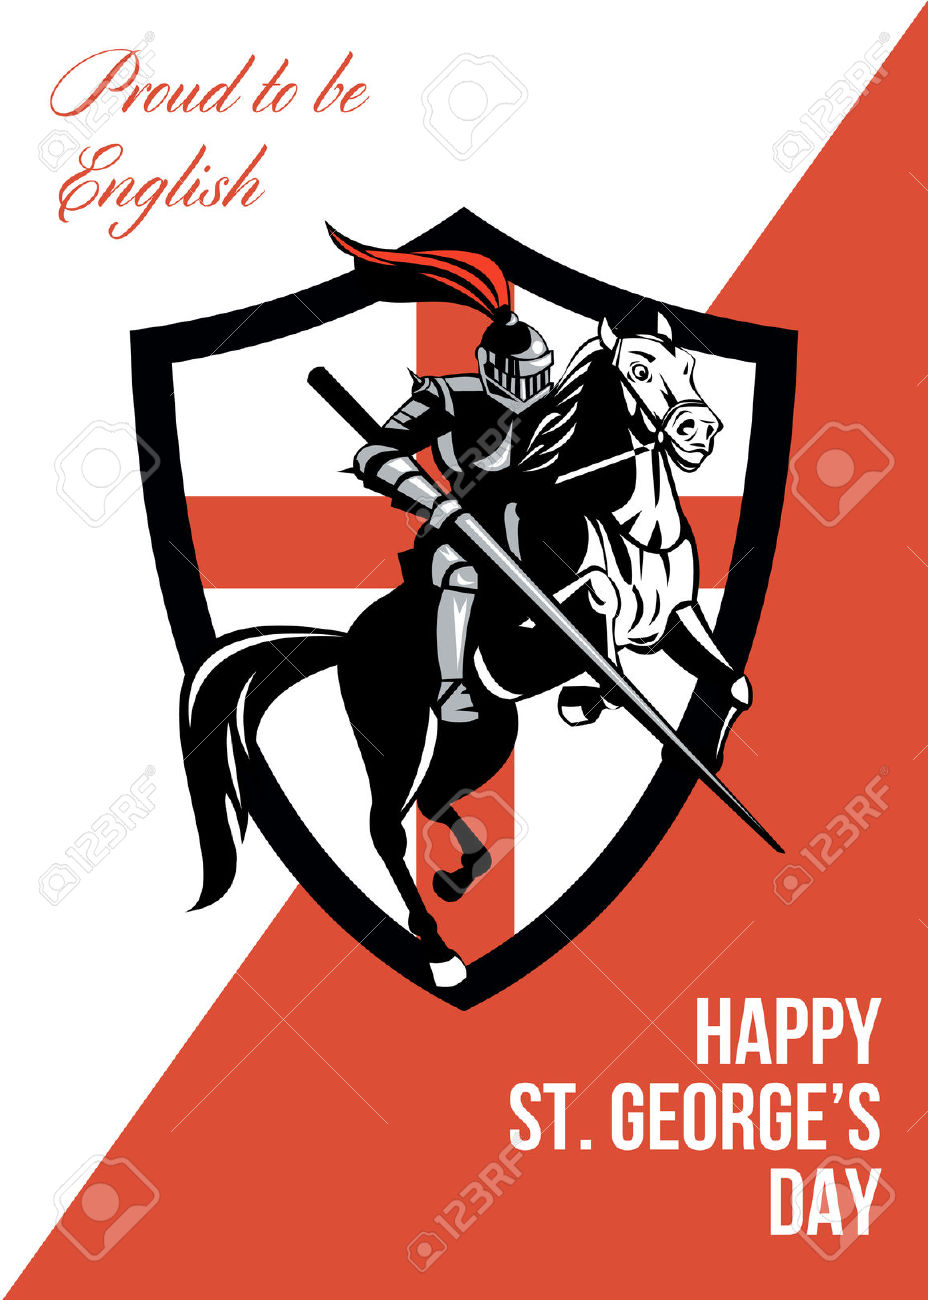 Poster Greeting Card Illustration Of Knight In Full Armor Riding.